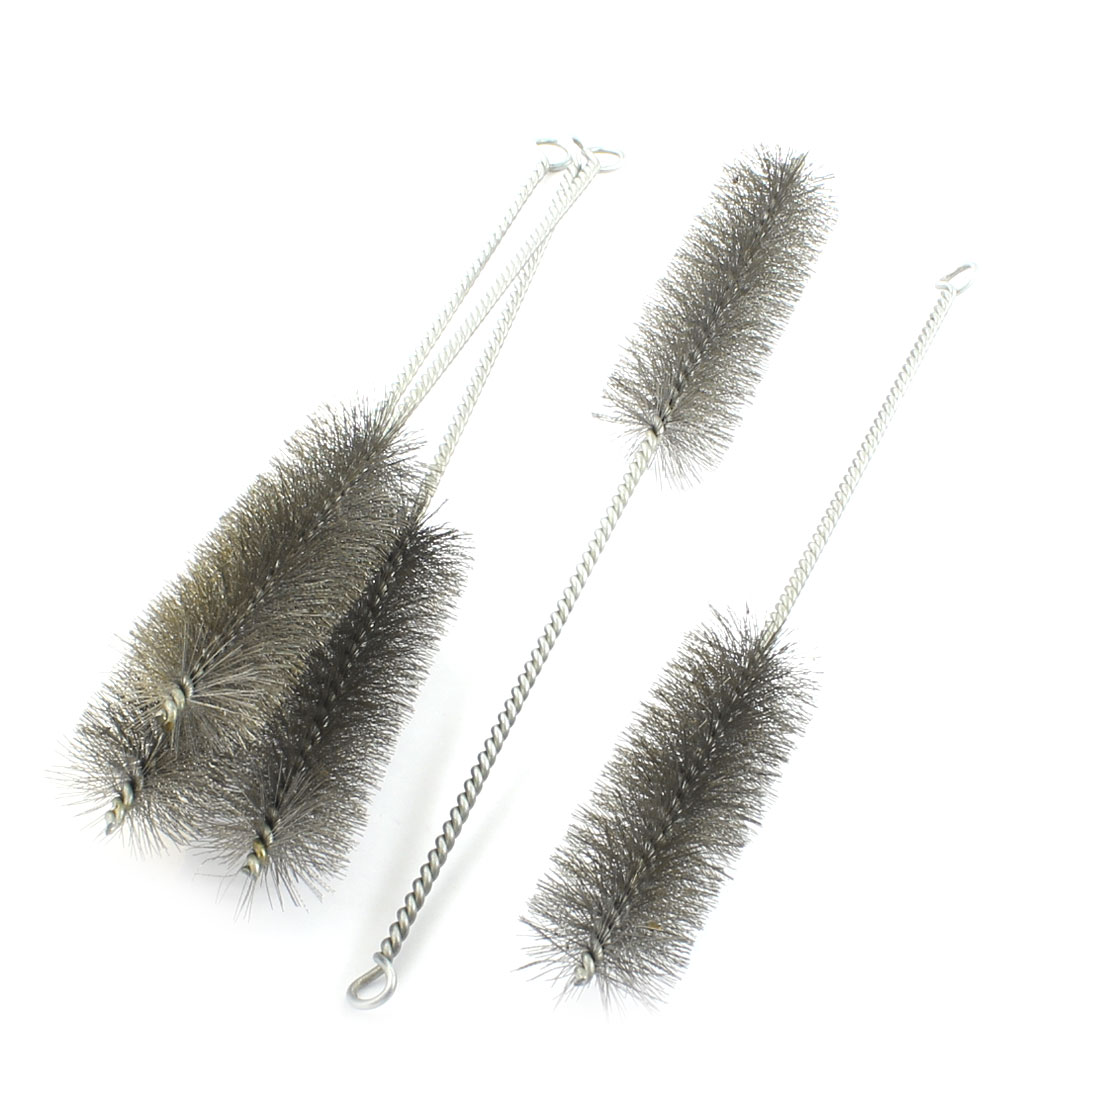 5Pcs 40mm Diameter Steel Wire Tube Brush Cleaning Tool 32cm Length